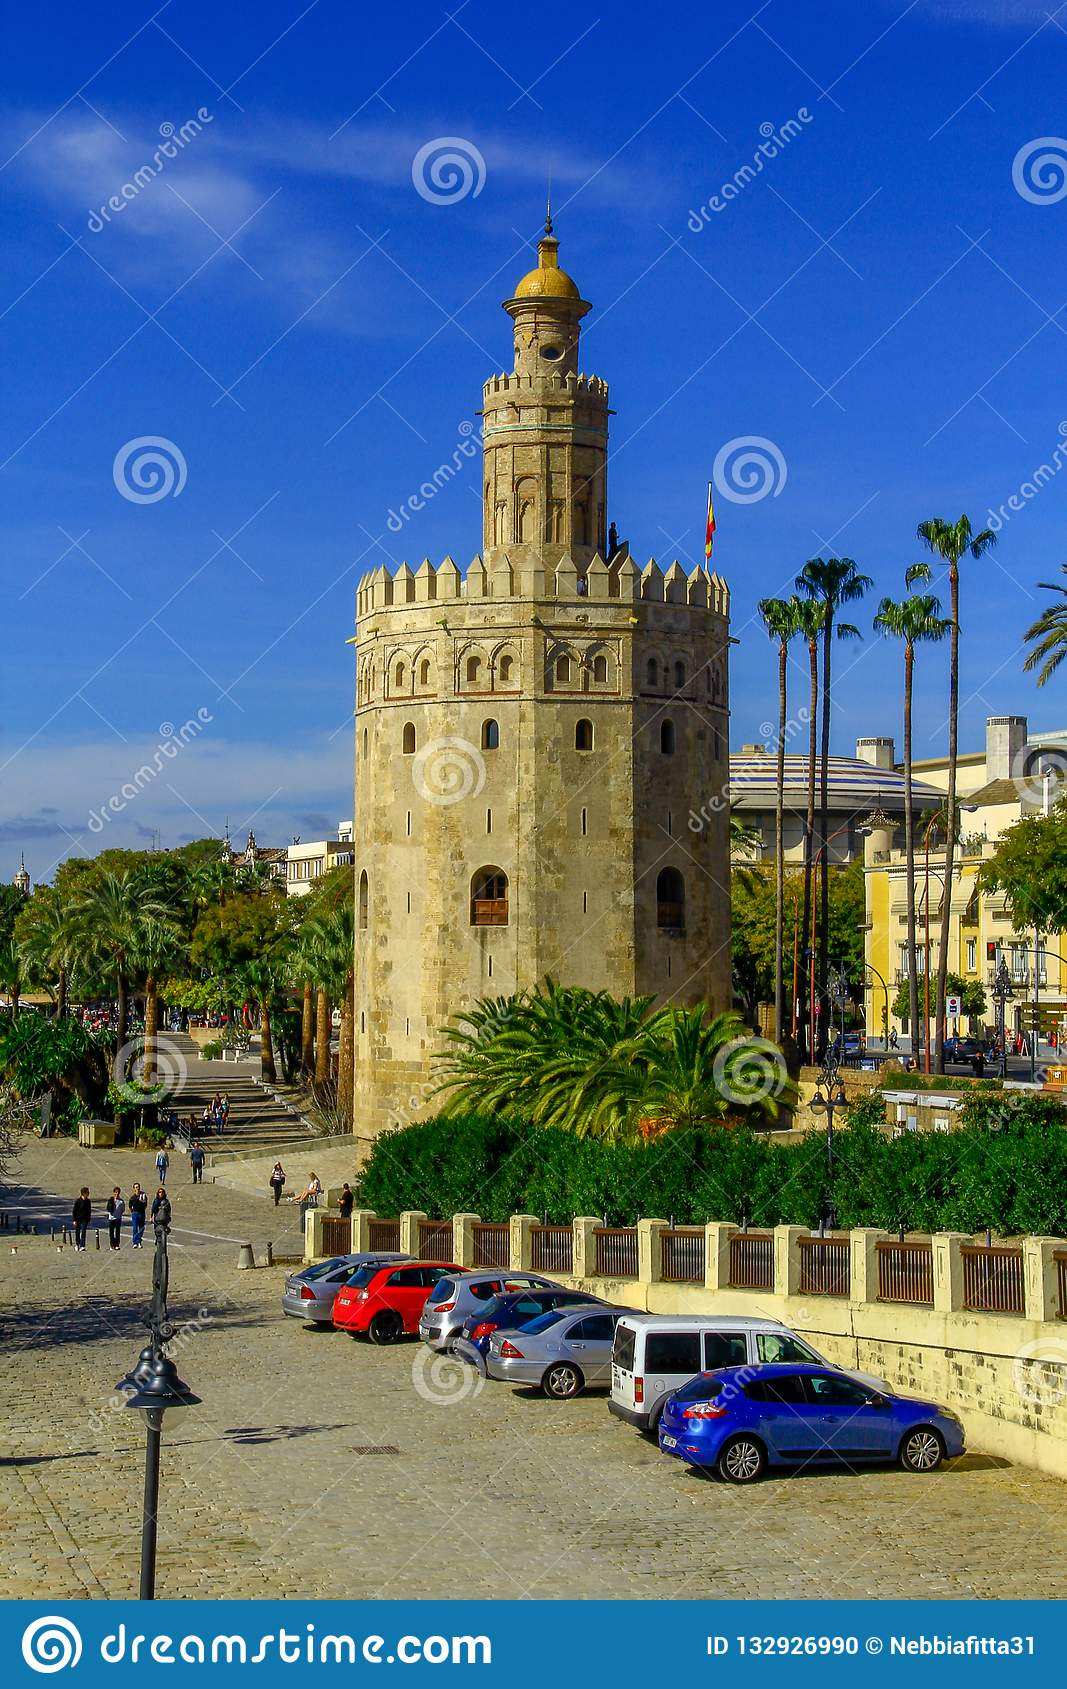 View of Golden Tower Torre del Oro of Seville, Andalusia, Spain over river Guadalquivir at sunset